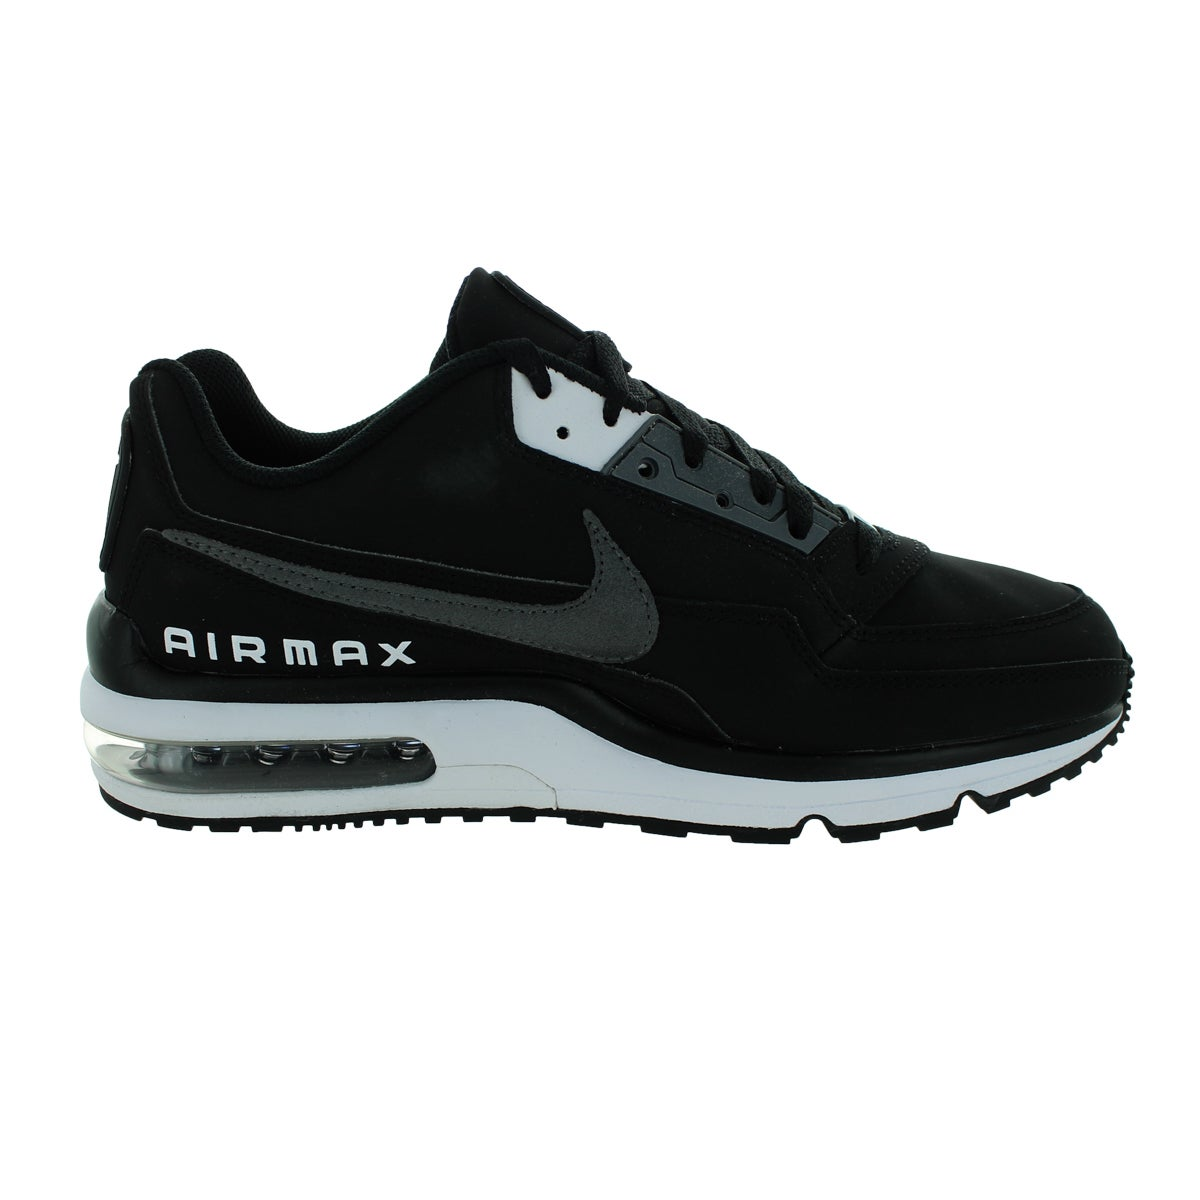 size 40 885f4 df9ce Shop Nike Men s Air Max Ltd 3 Black Dark Grey White Running Shoe - Free  Shipping Today - Overstock - 12330939